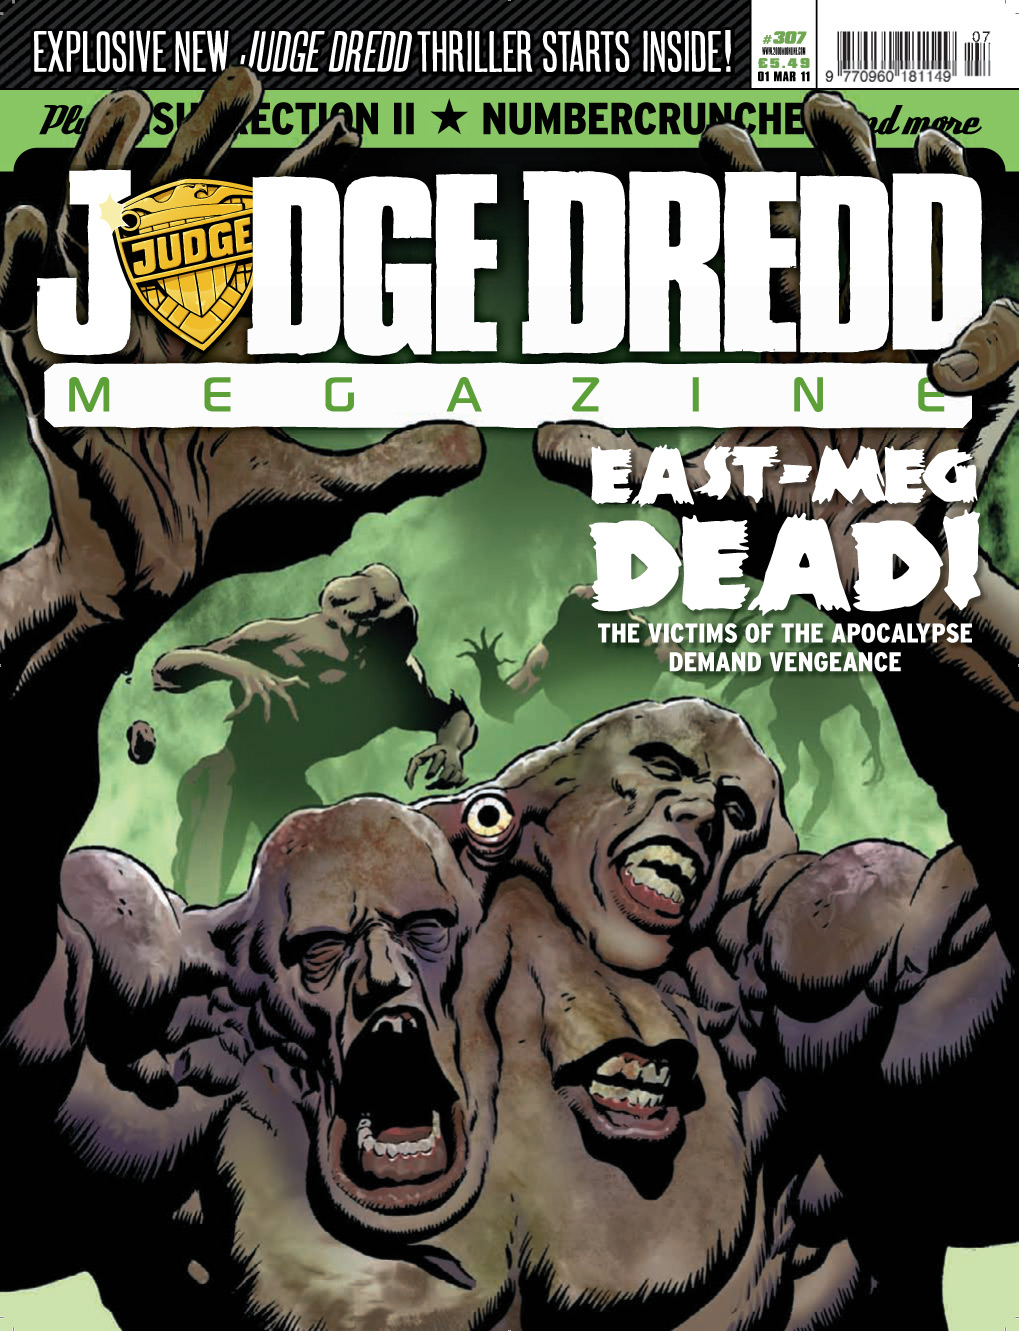 Judge Dredd Megazine (Vol. 5) 307 Page 1